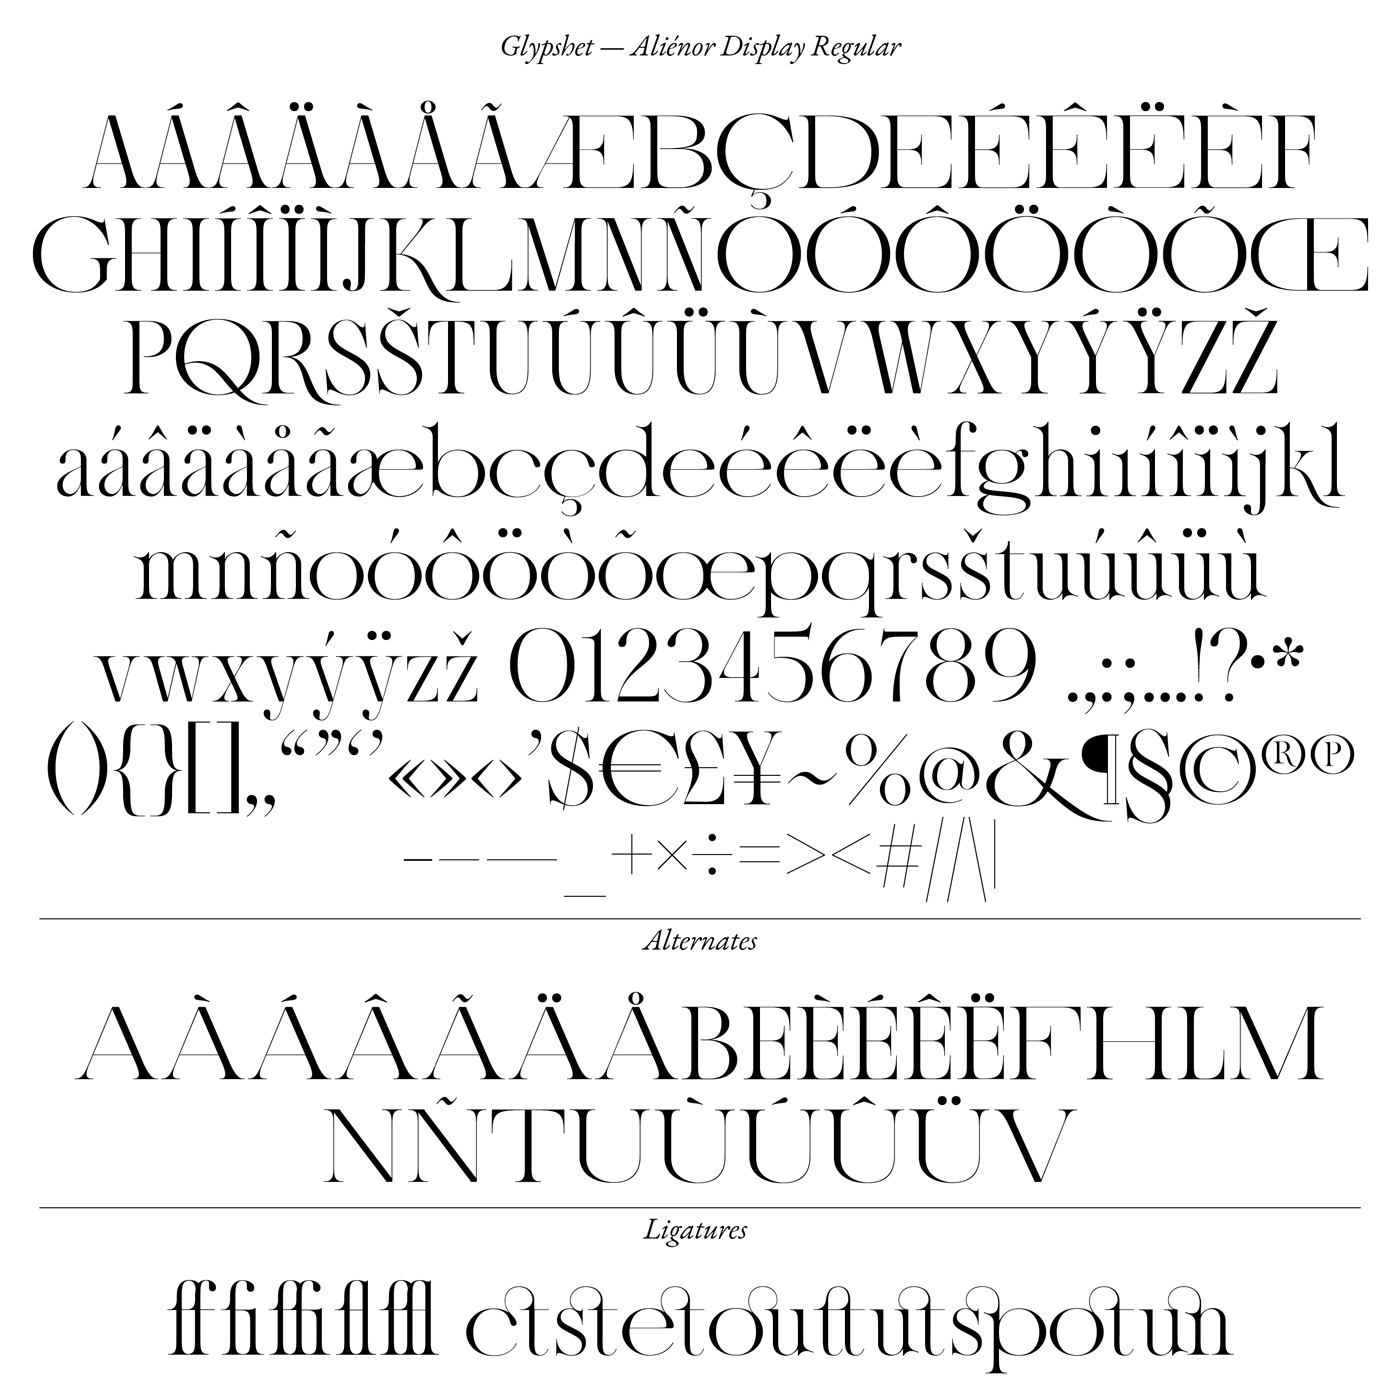 10 collide24 Lou Rainaldo Anne Dauphine Borione - The typeface 'Aliénor' by Anne-Dauphine Borione and Lou Rainaldo is a mixture of elegance and extravagance